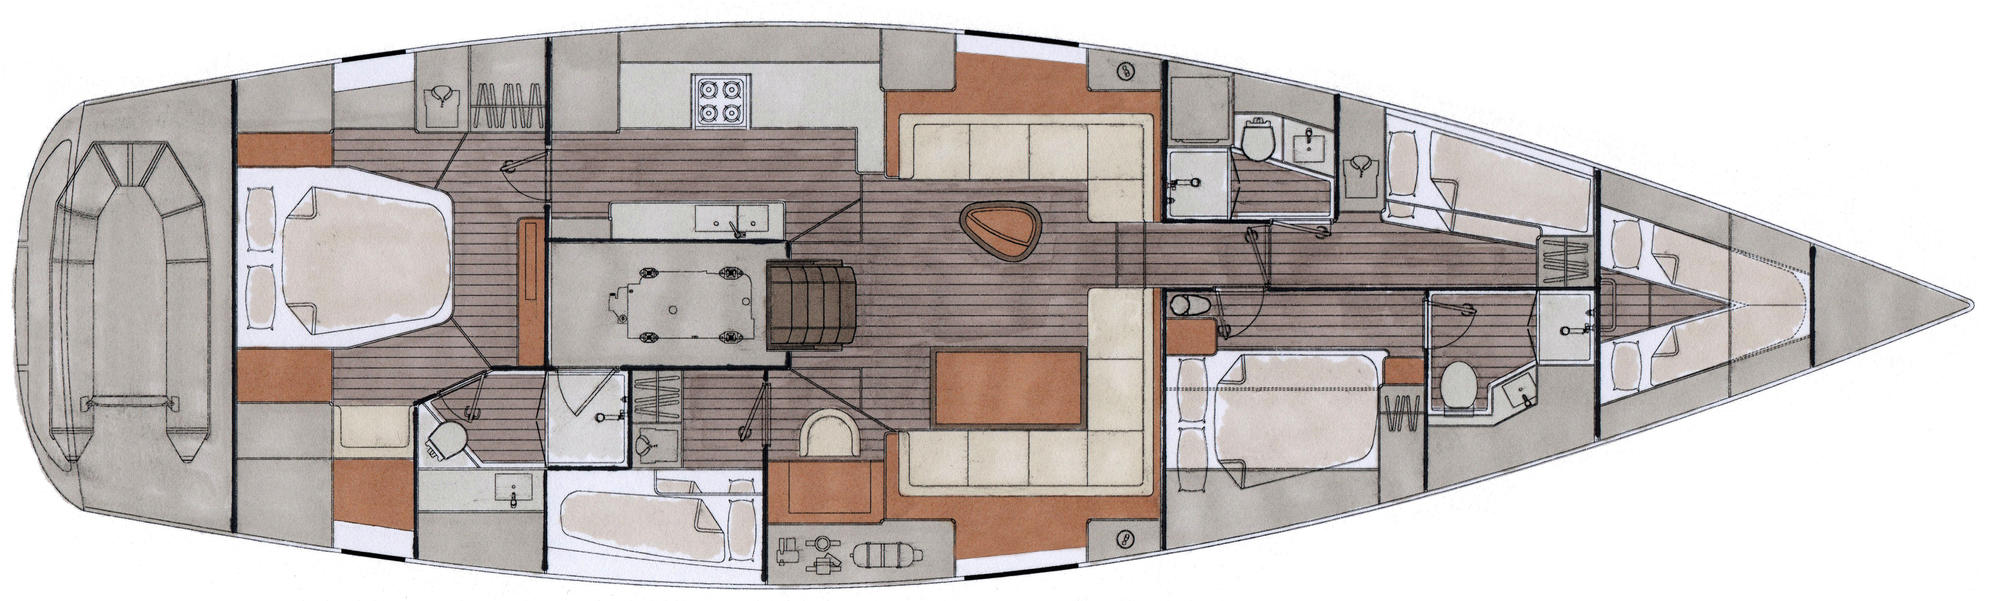 Conyplex Contest 62 CS - contest_62cs_interior_layout_d.jpg